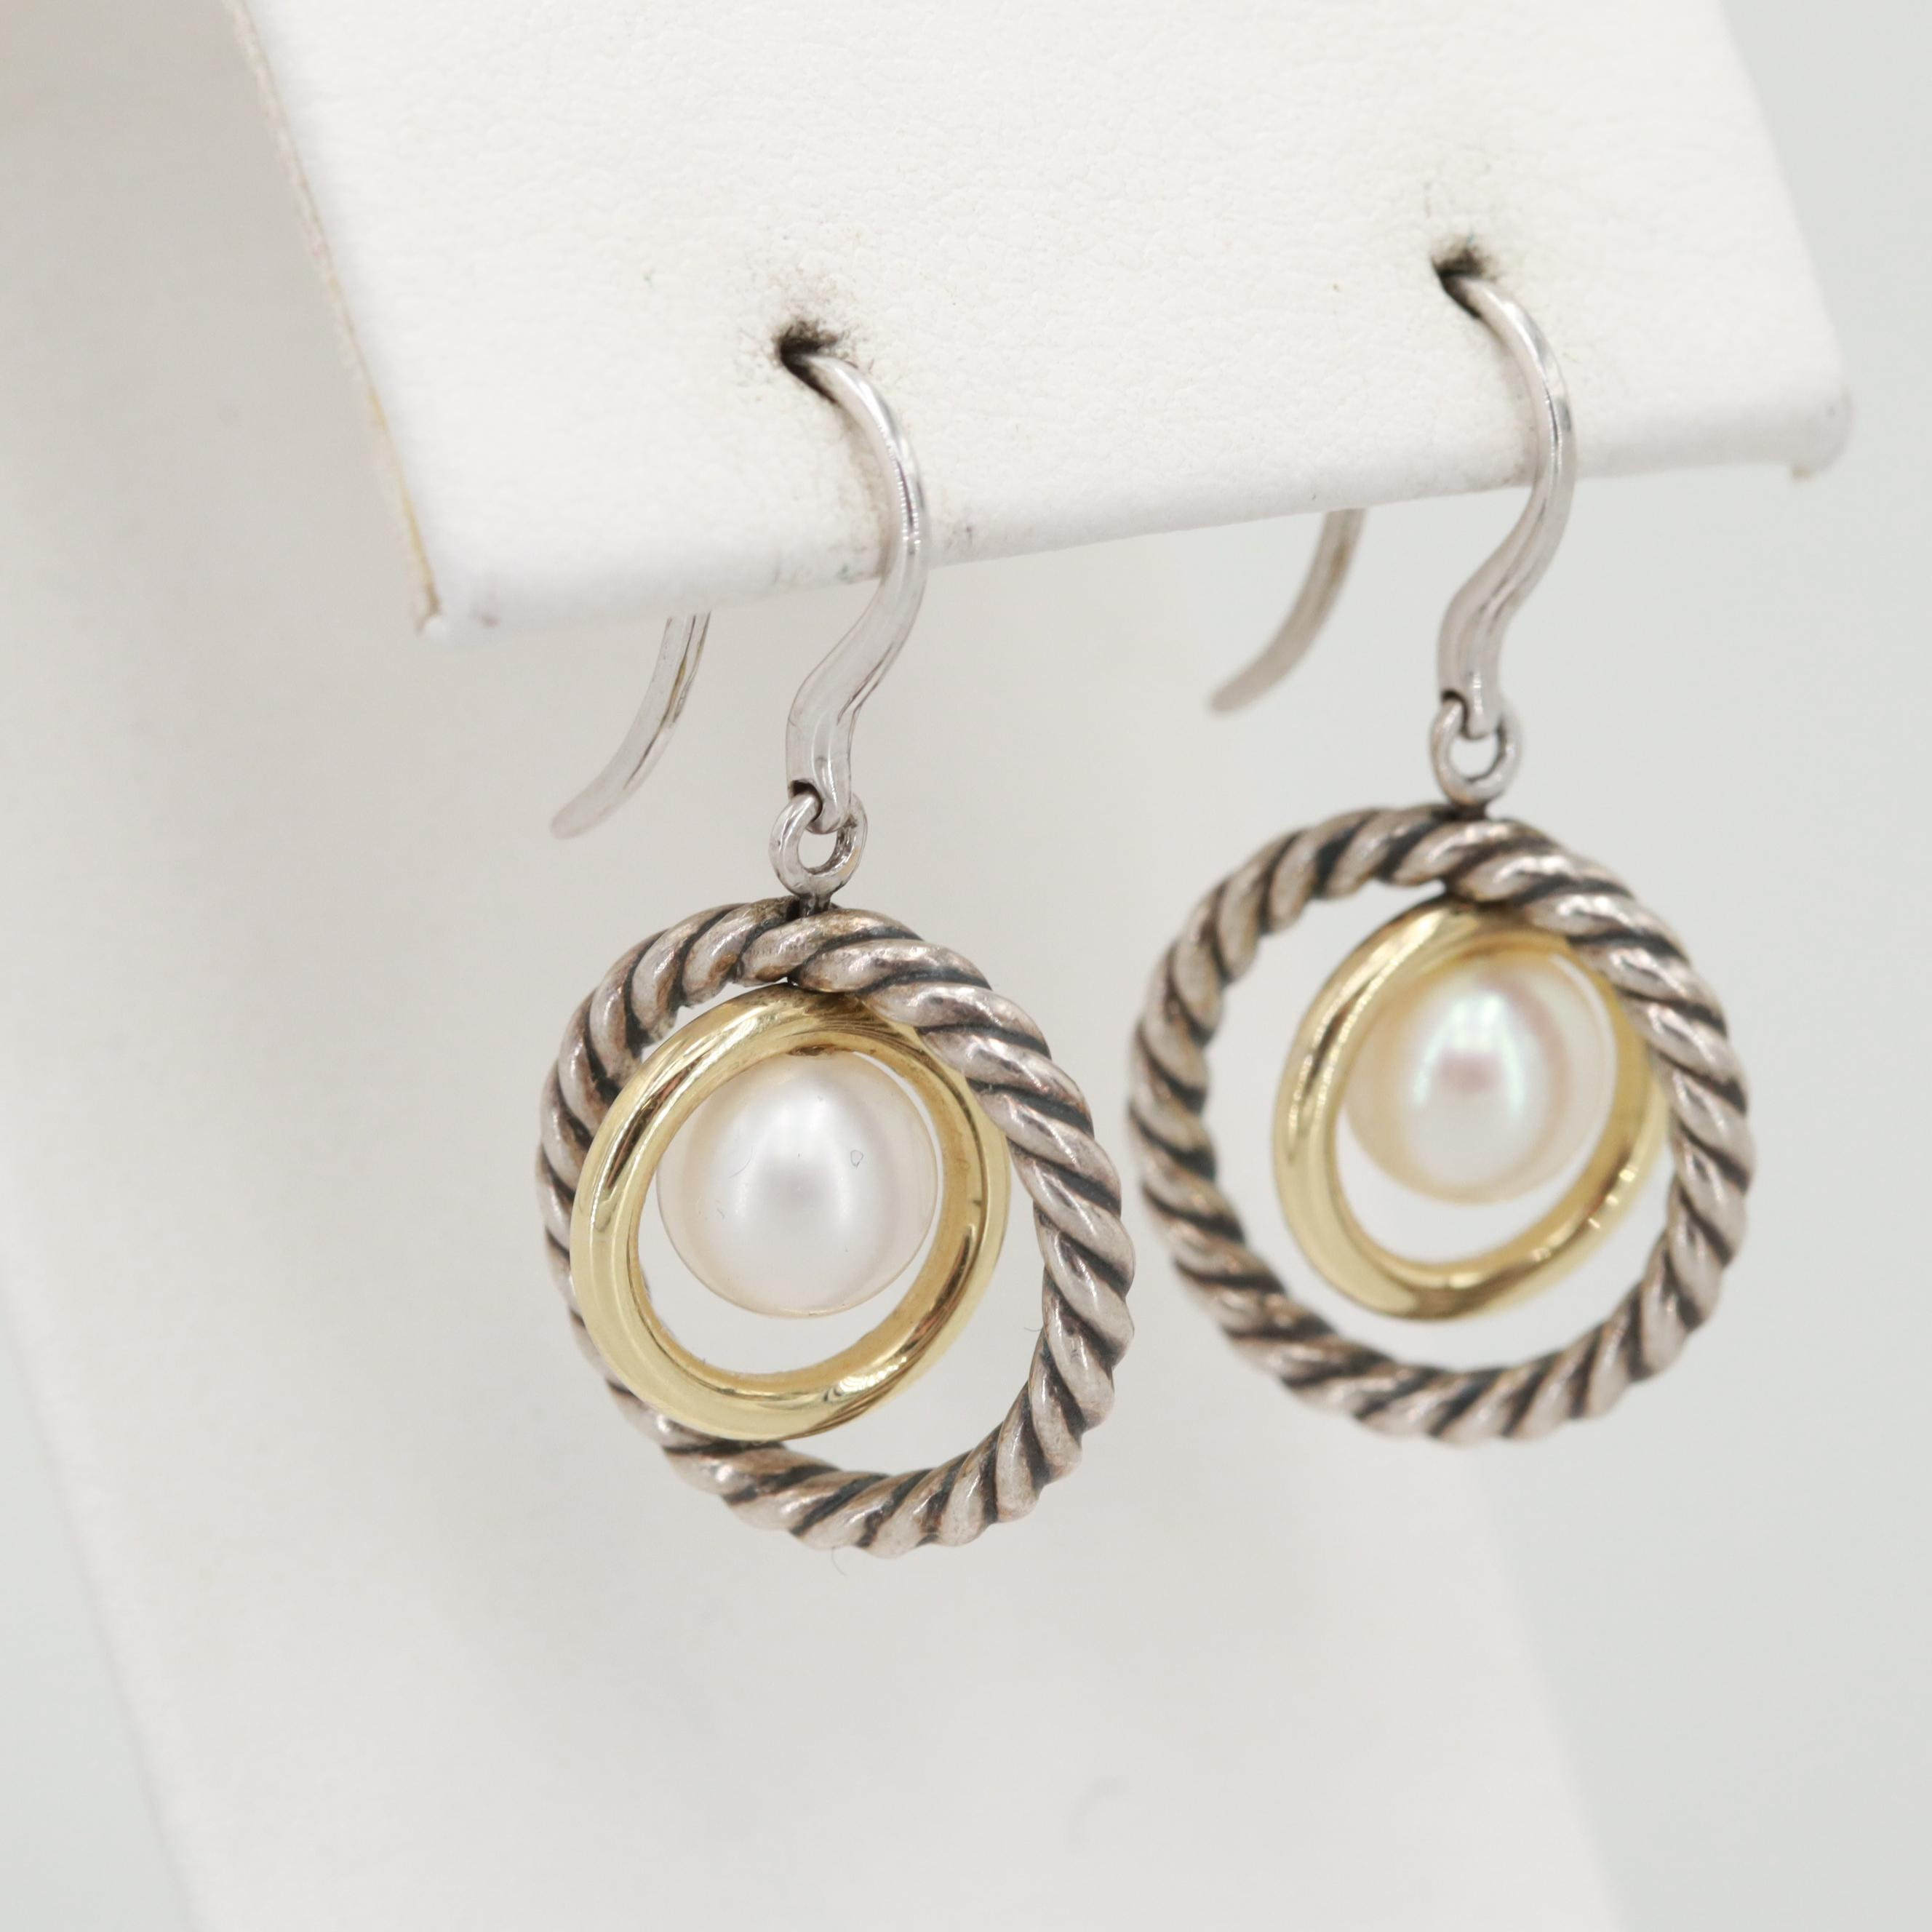 David Yurman Sterling Silver Cultured Pearl Dangle Earrings with 14K Accents